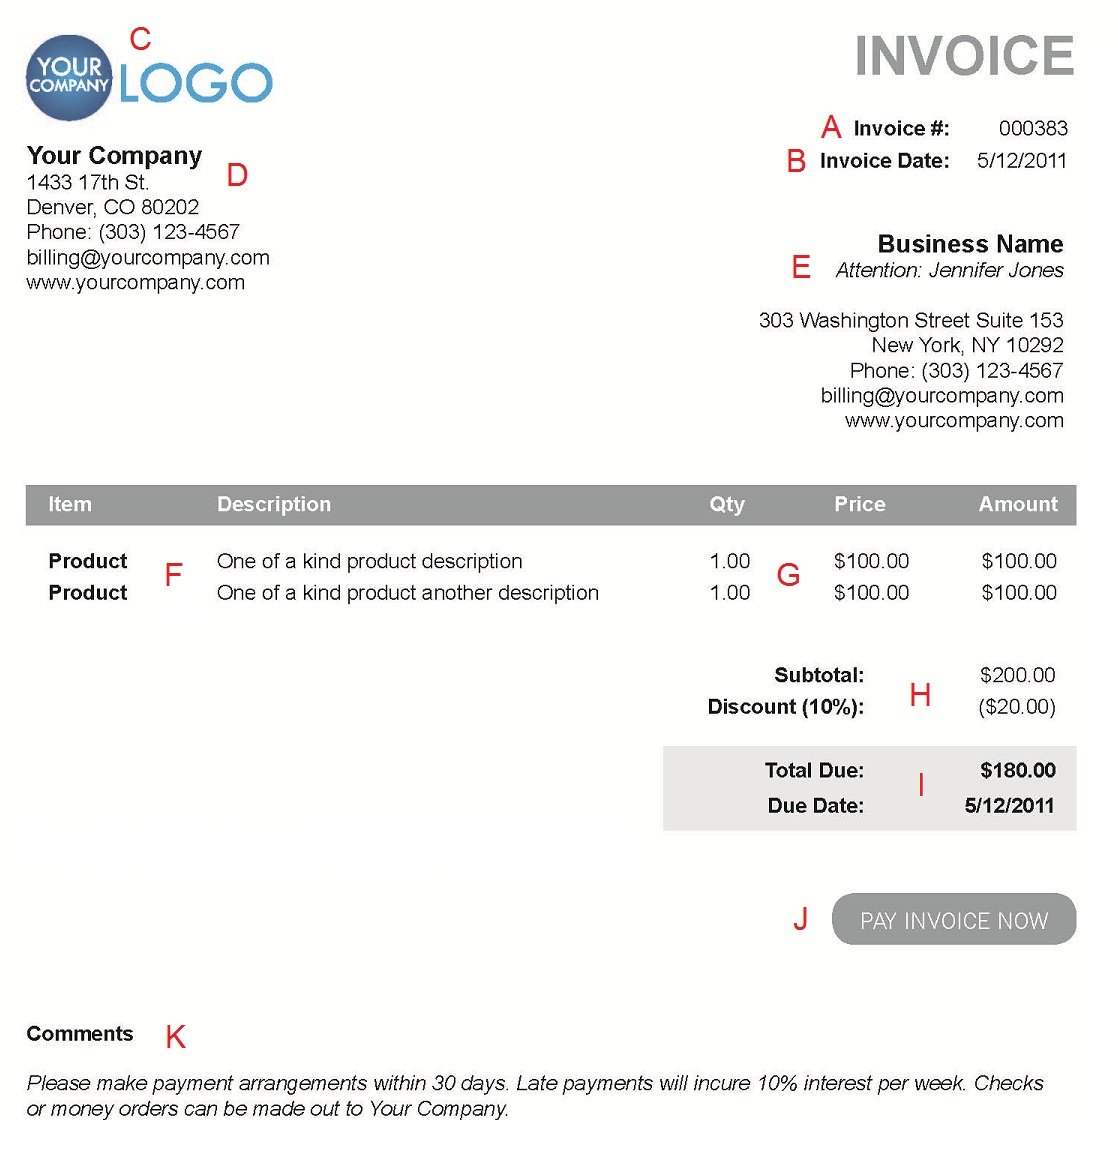 Modaoxus  Pleasant The  Different Sections Of An Electronic Payment Invoice With Exciting A  With Comely Free Invoice For Mac Also Overdue Invoice Reminder In Addition Invoices And Statements And Zoho Invoice Quickbooks As Well As Automatic Invoice Generator Additionally Dealer Invoice Pricing On New Cars From Paysimplecom With Modaoxus  Exciting The  Different Sections Of An Electronic Payment Invoice With Comely A  And Pleasant Free Invoice For Mac Also Overdue Invoice Reminder In Addition Invoices And Statements From Paysimplecom